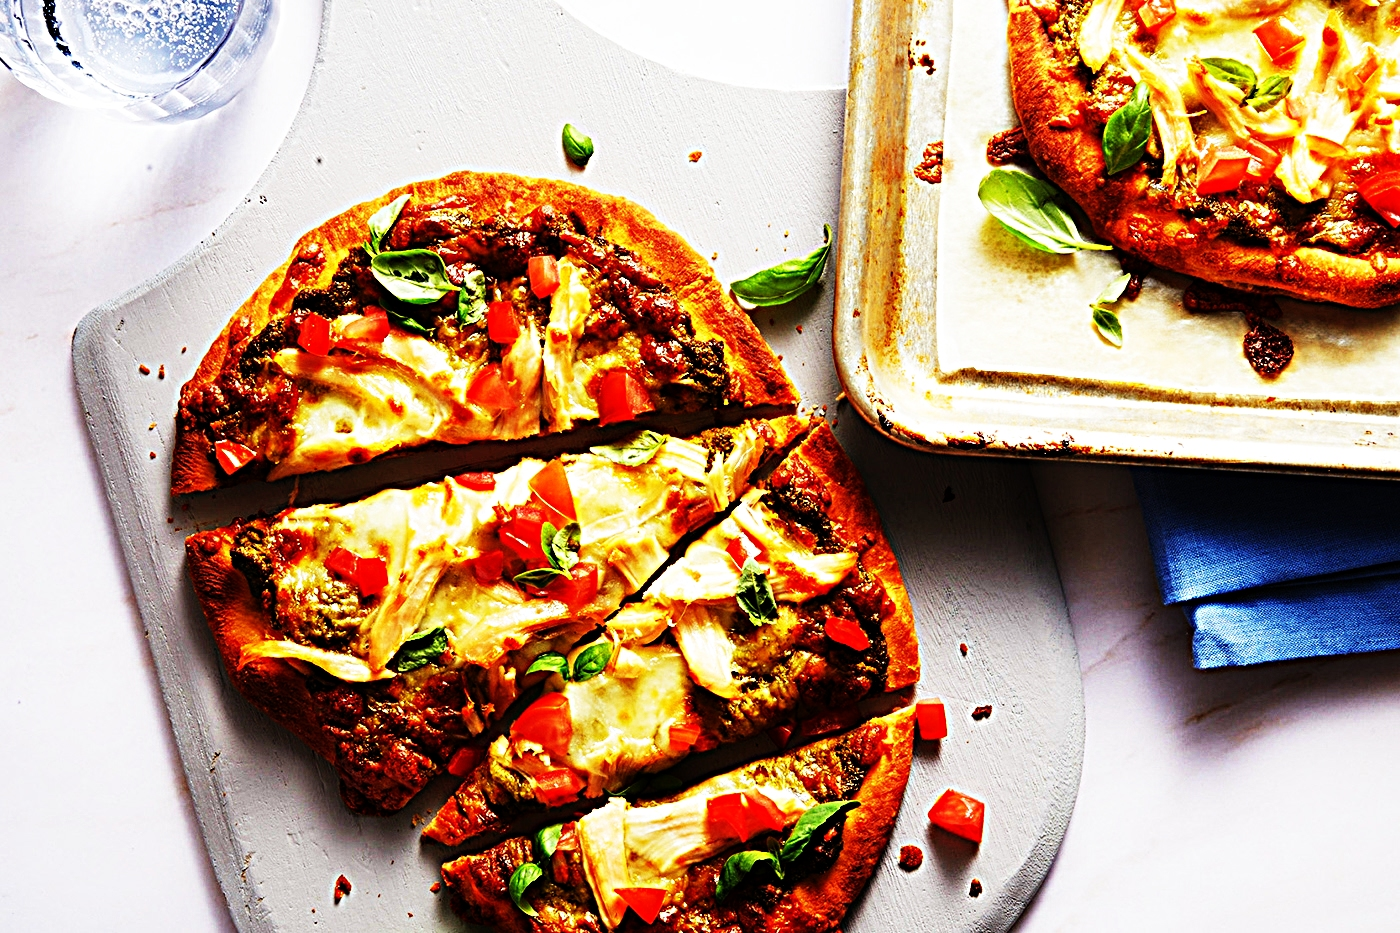 Stupid-Easy Recipe for Chicken Pesto Naan Pizzas (#1 Top-Rated)